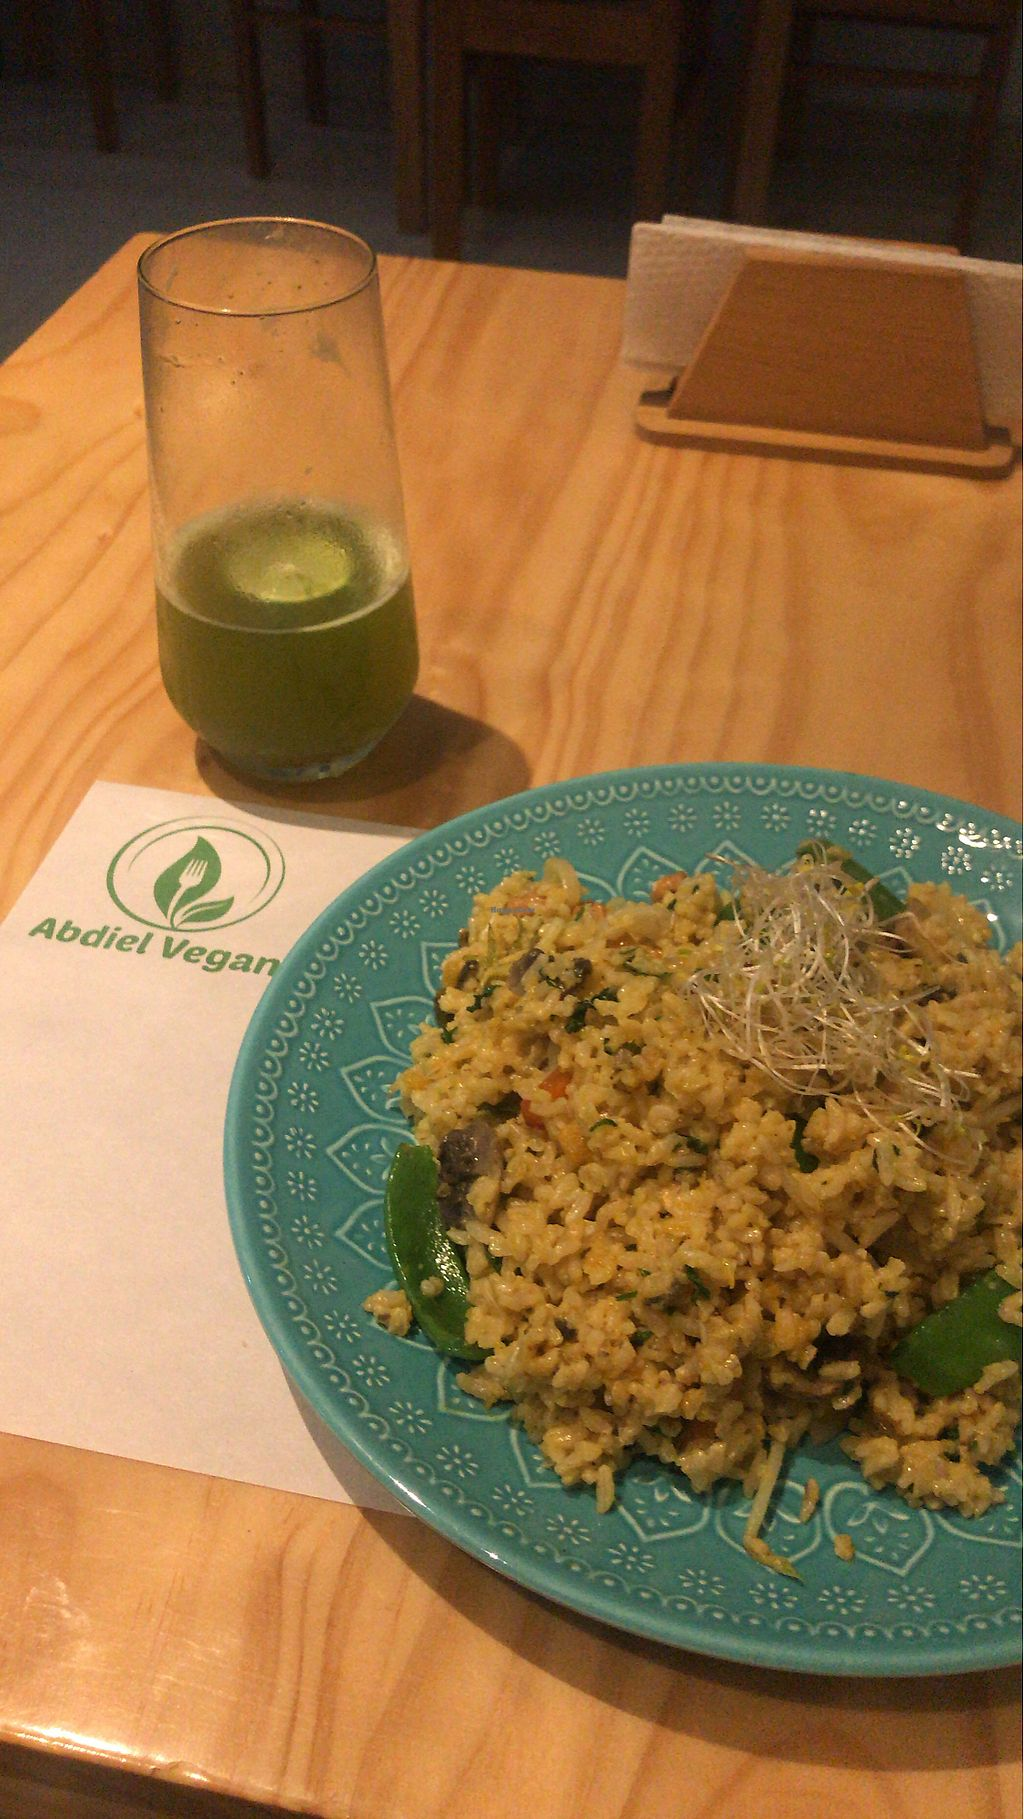 """Photo of Abdiel Vegan  by <a href=""""/members/profile/AdamHogue"""">AdamHogue</a> <br/>Thai with Lemonade <br/> March 27, 2018  - <a href='/contact/abuse/image/91668/376660'>Report</a>"""